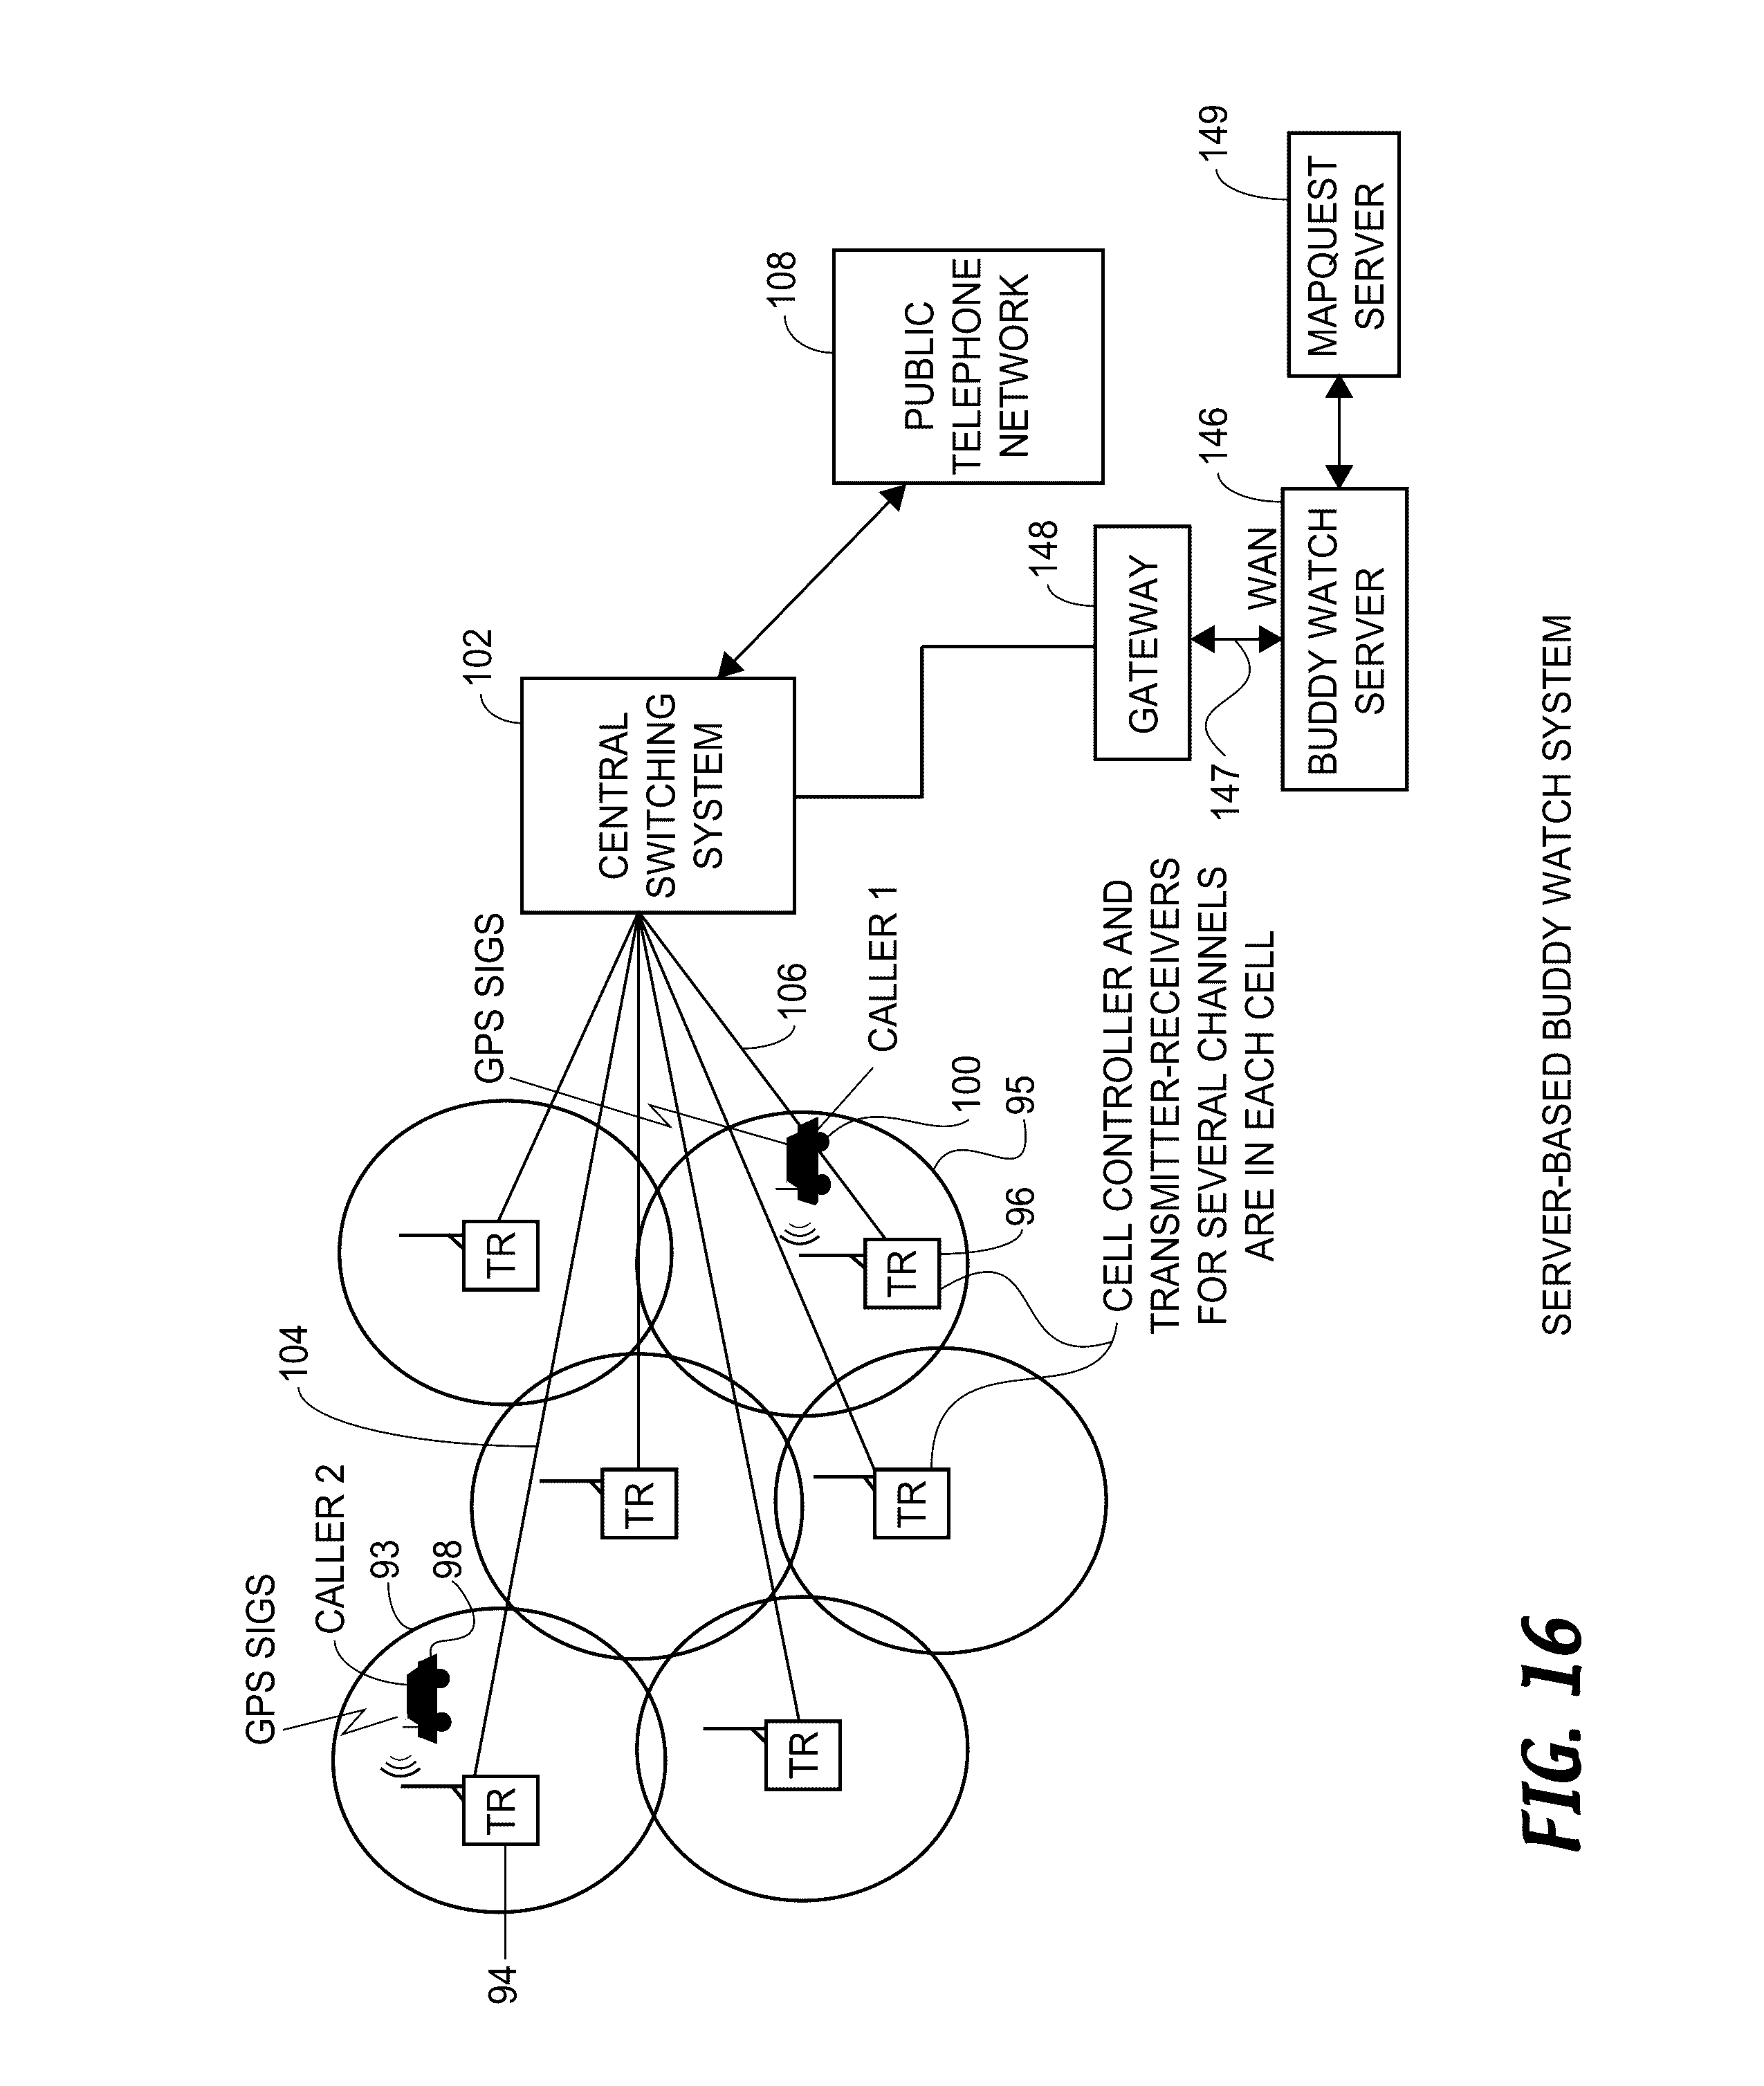 Us9467832b2 methods and systems for temporarily sharing position data between mobile device users patents